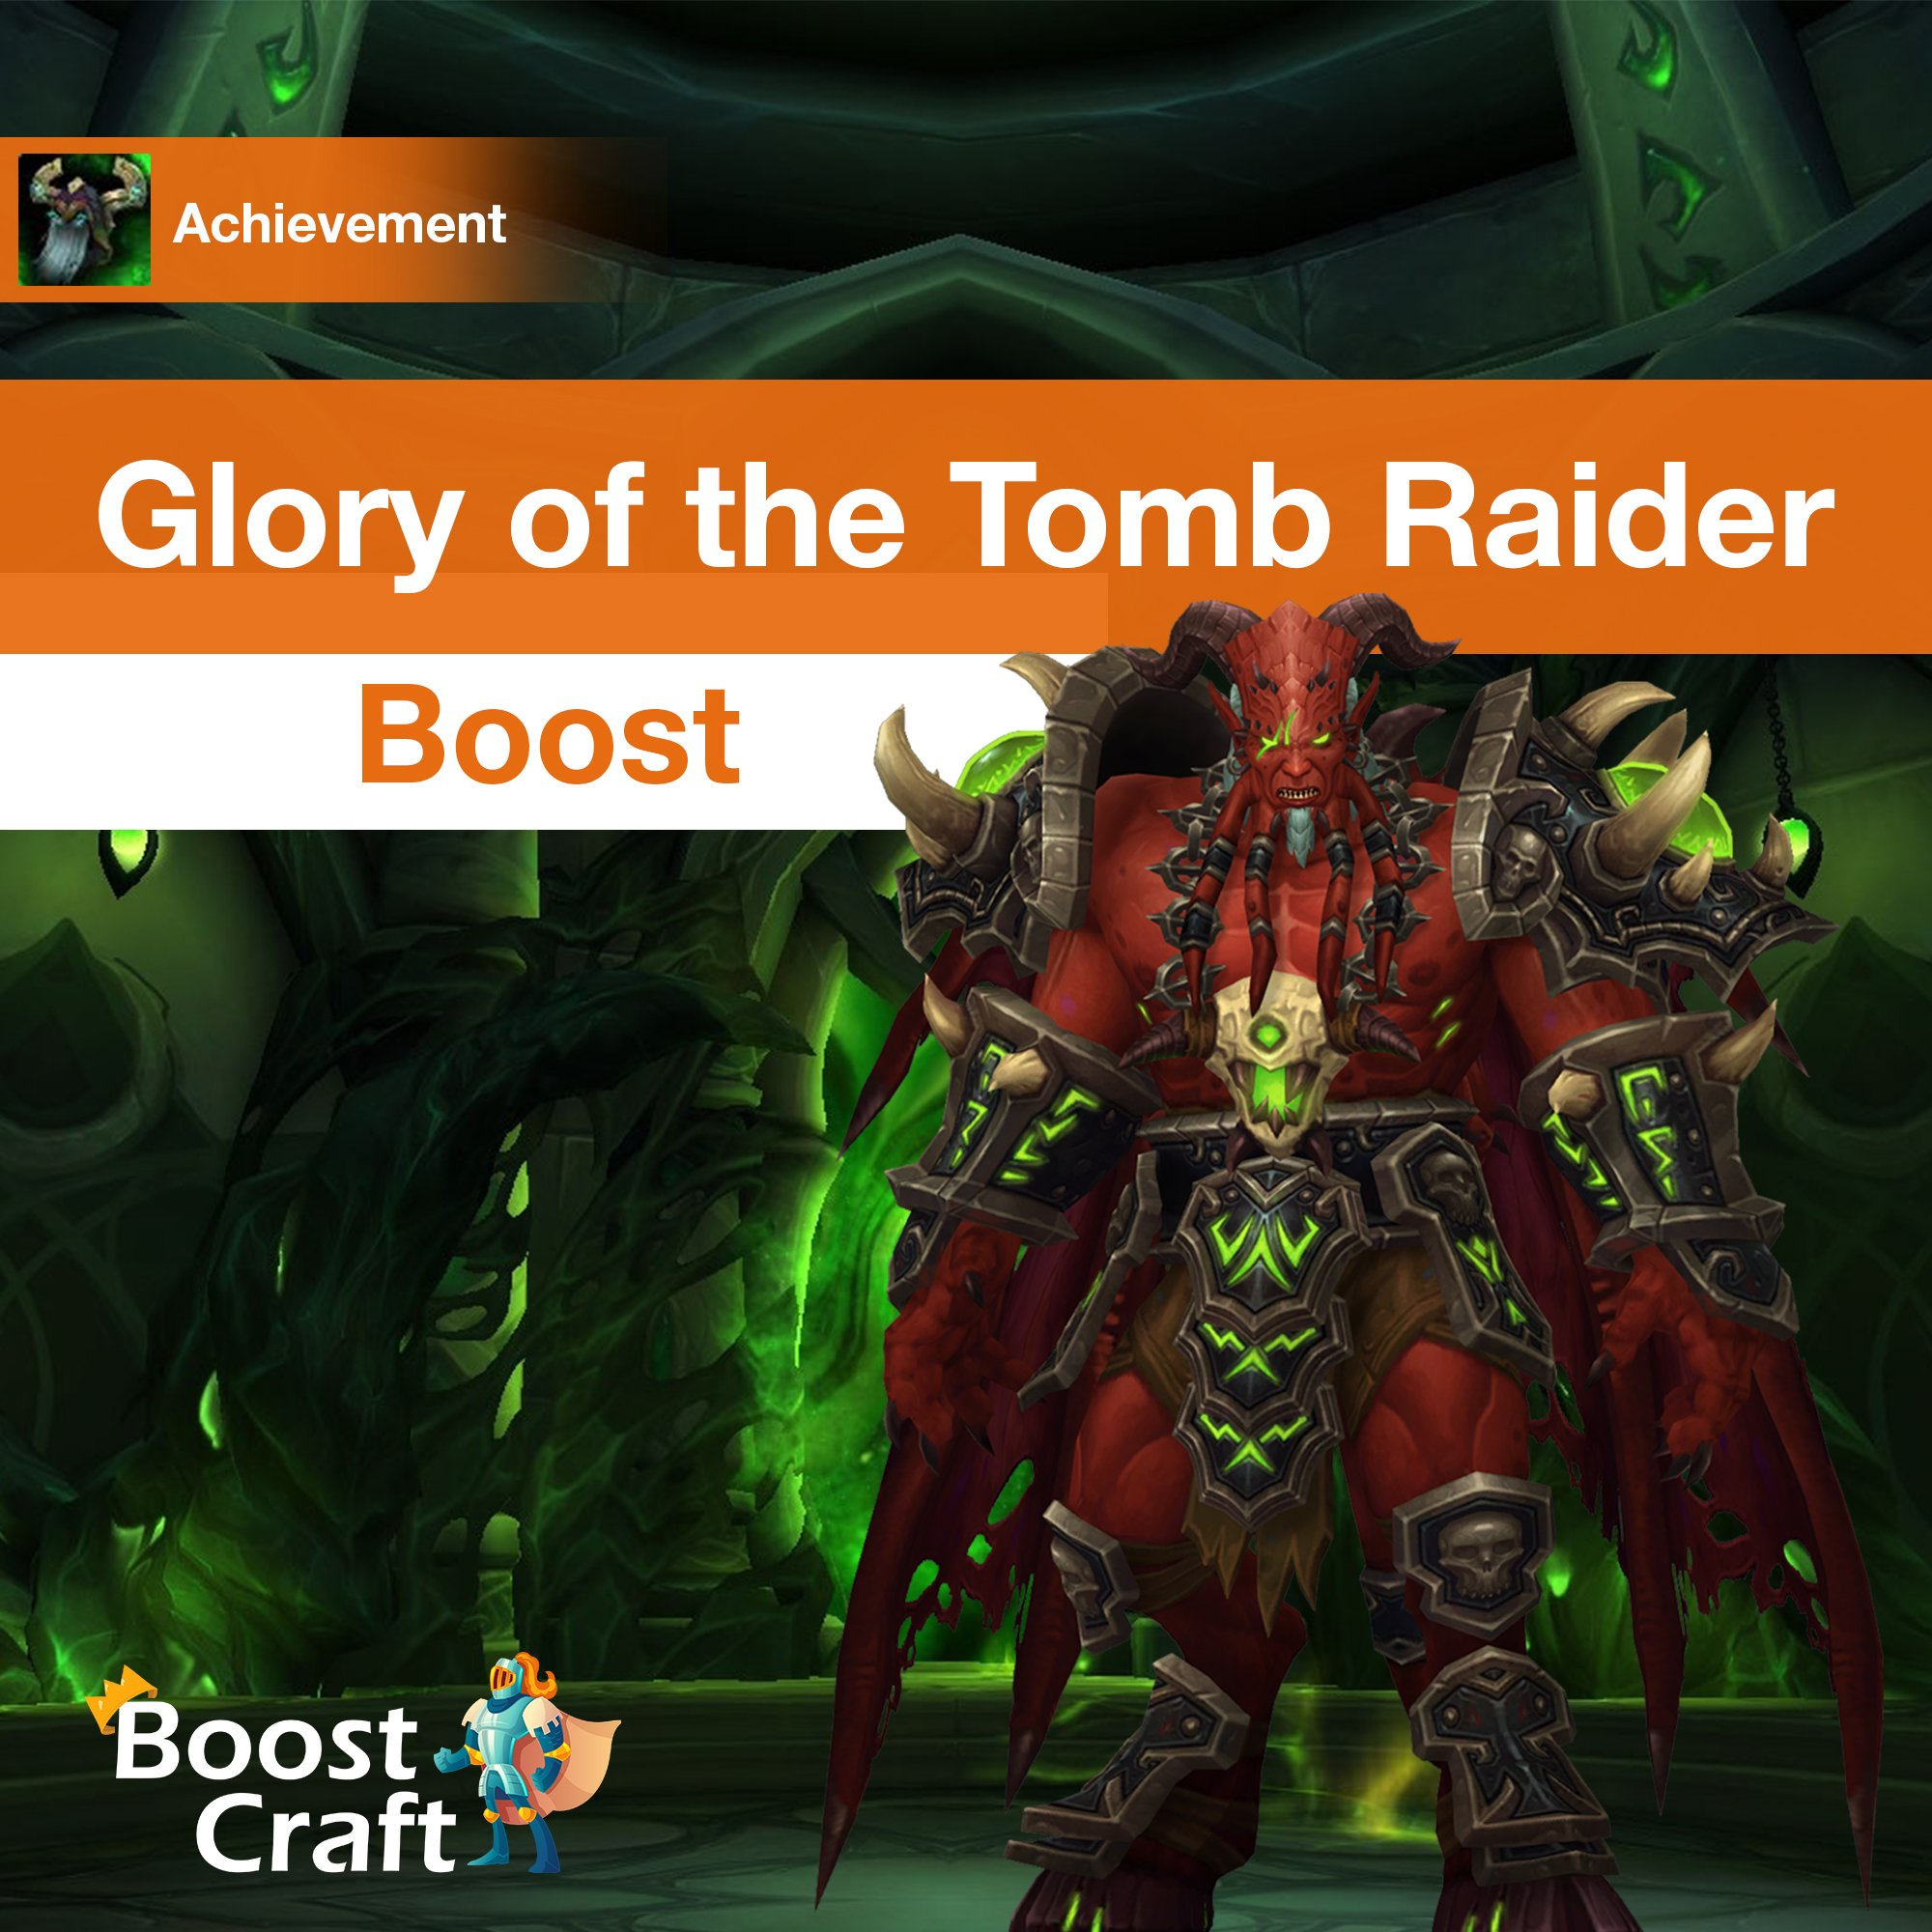 [Glory of the Tomb Raider] Boost